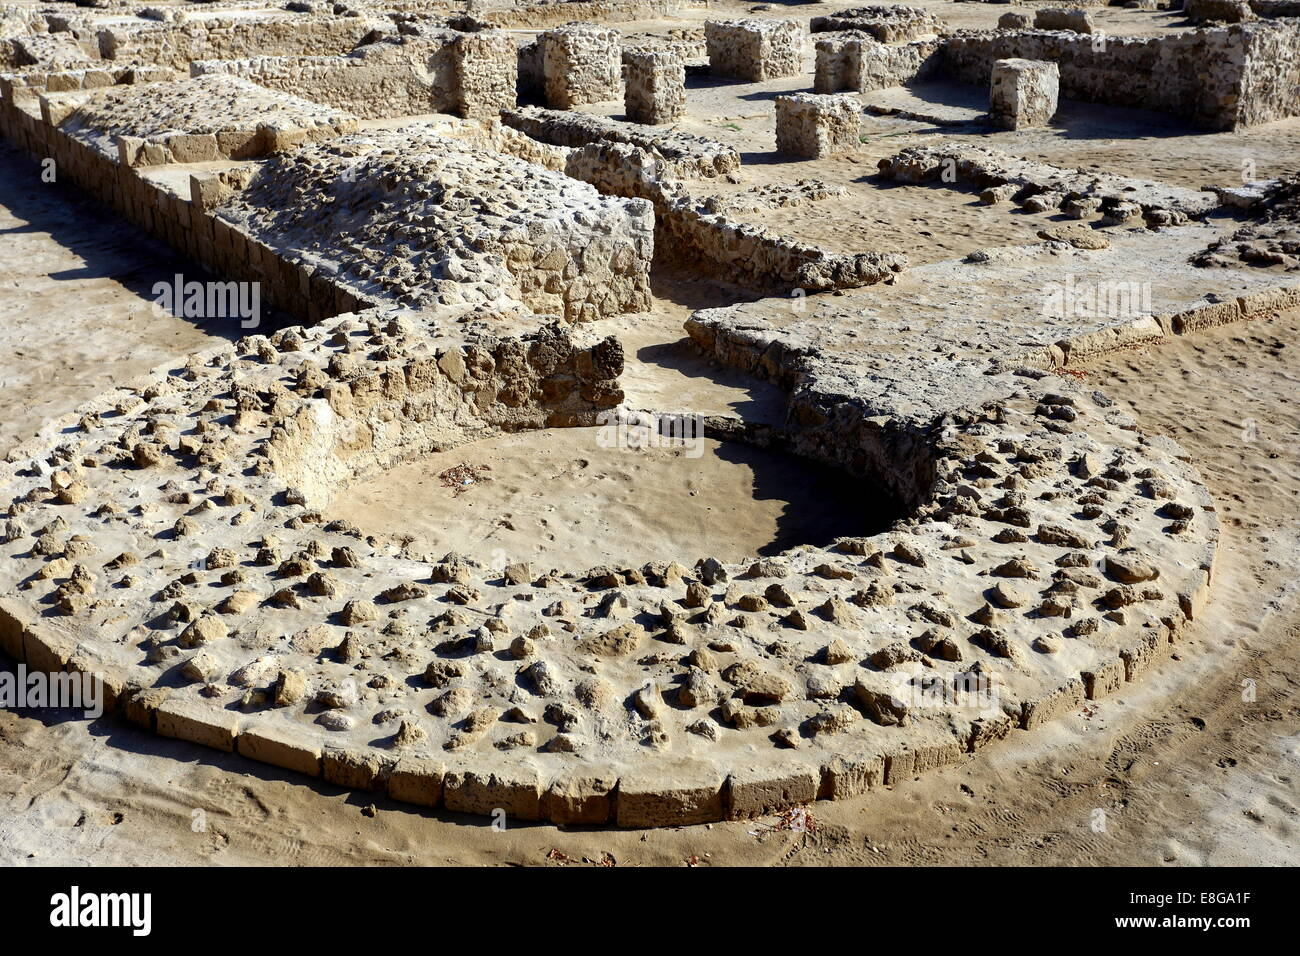 Excavations of Dilmun-era ruins at the Bahrain Fort archaeological site, Kingdom of Bahrain - Stock Image